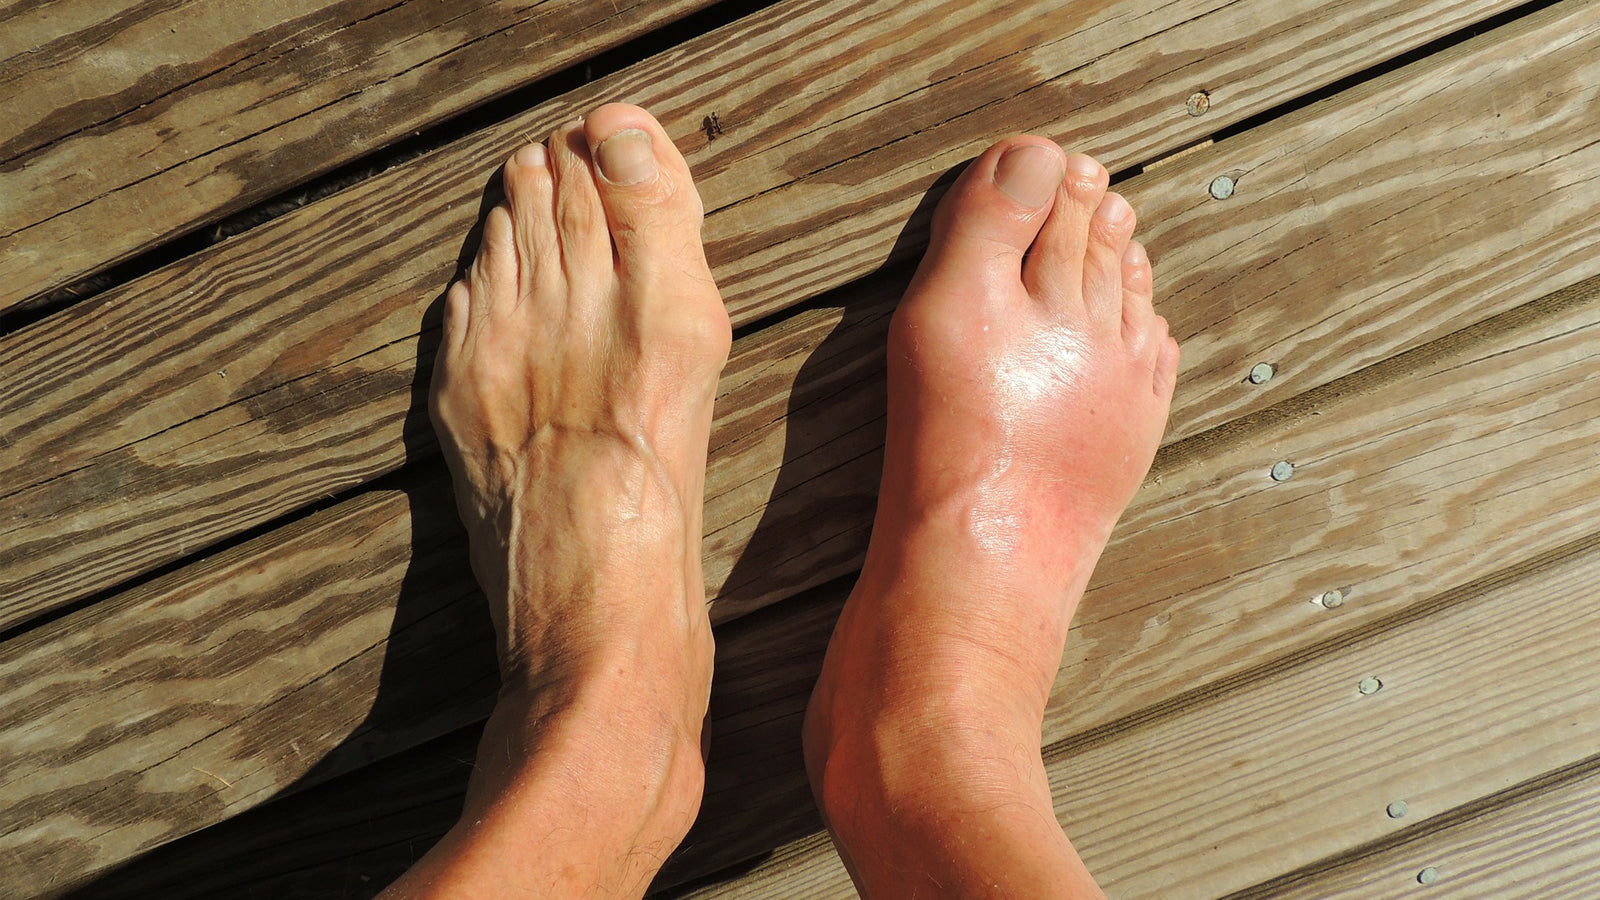 picture of old man's feet, red and swollen due to gout